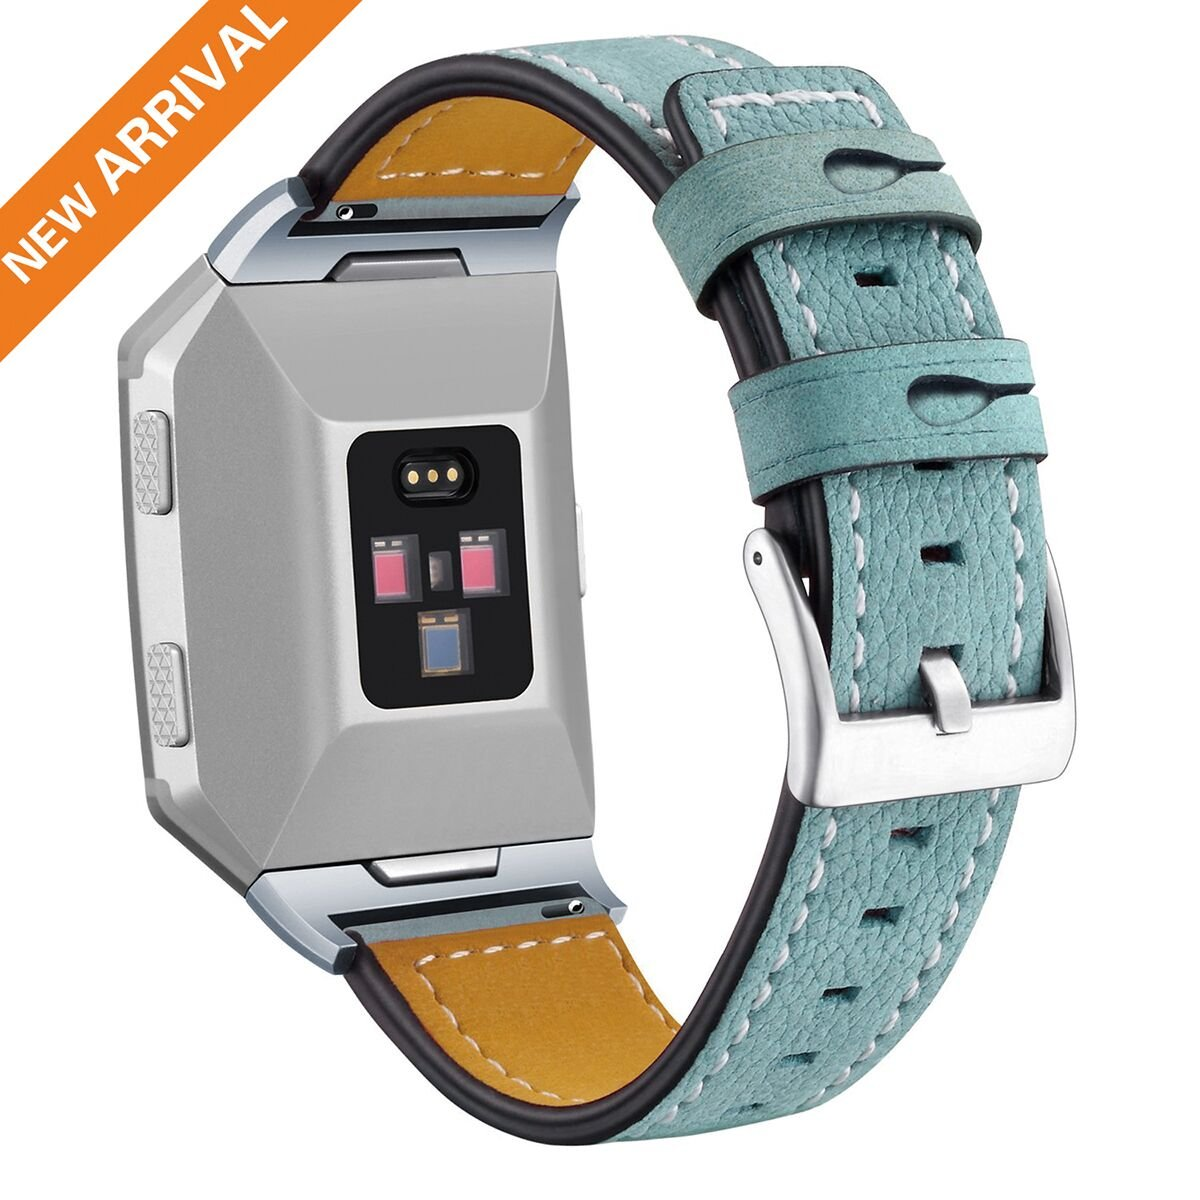 For Fitbit Ionic Band, Genuine Leather Replacement Bands for Fitbit Ionic Straps, Fitbit Ionic Bands Leather Watch Wristband fo Women Men Brown Black Blue Pink, One Size (Small & Large Included)